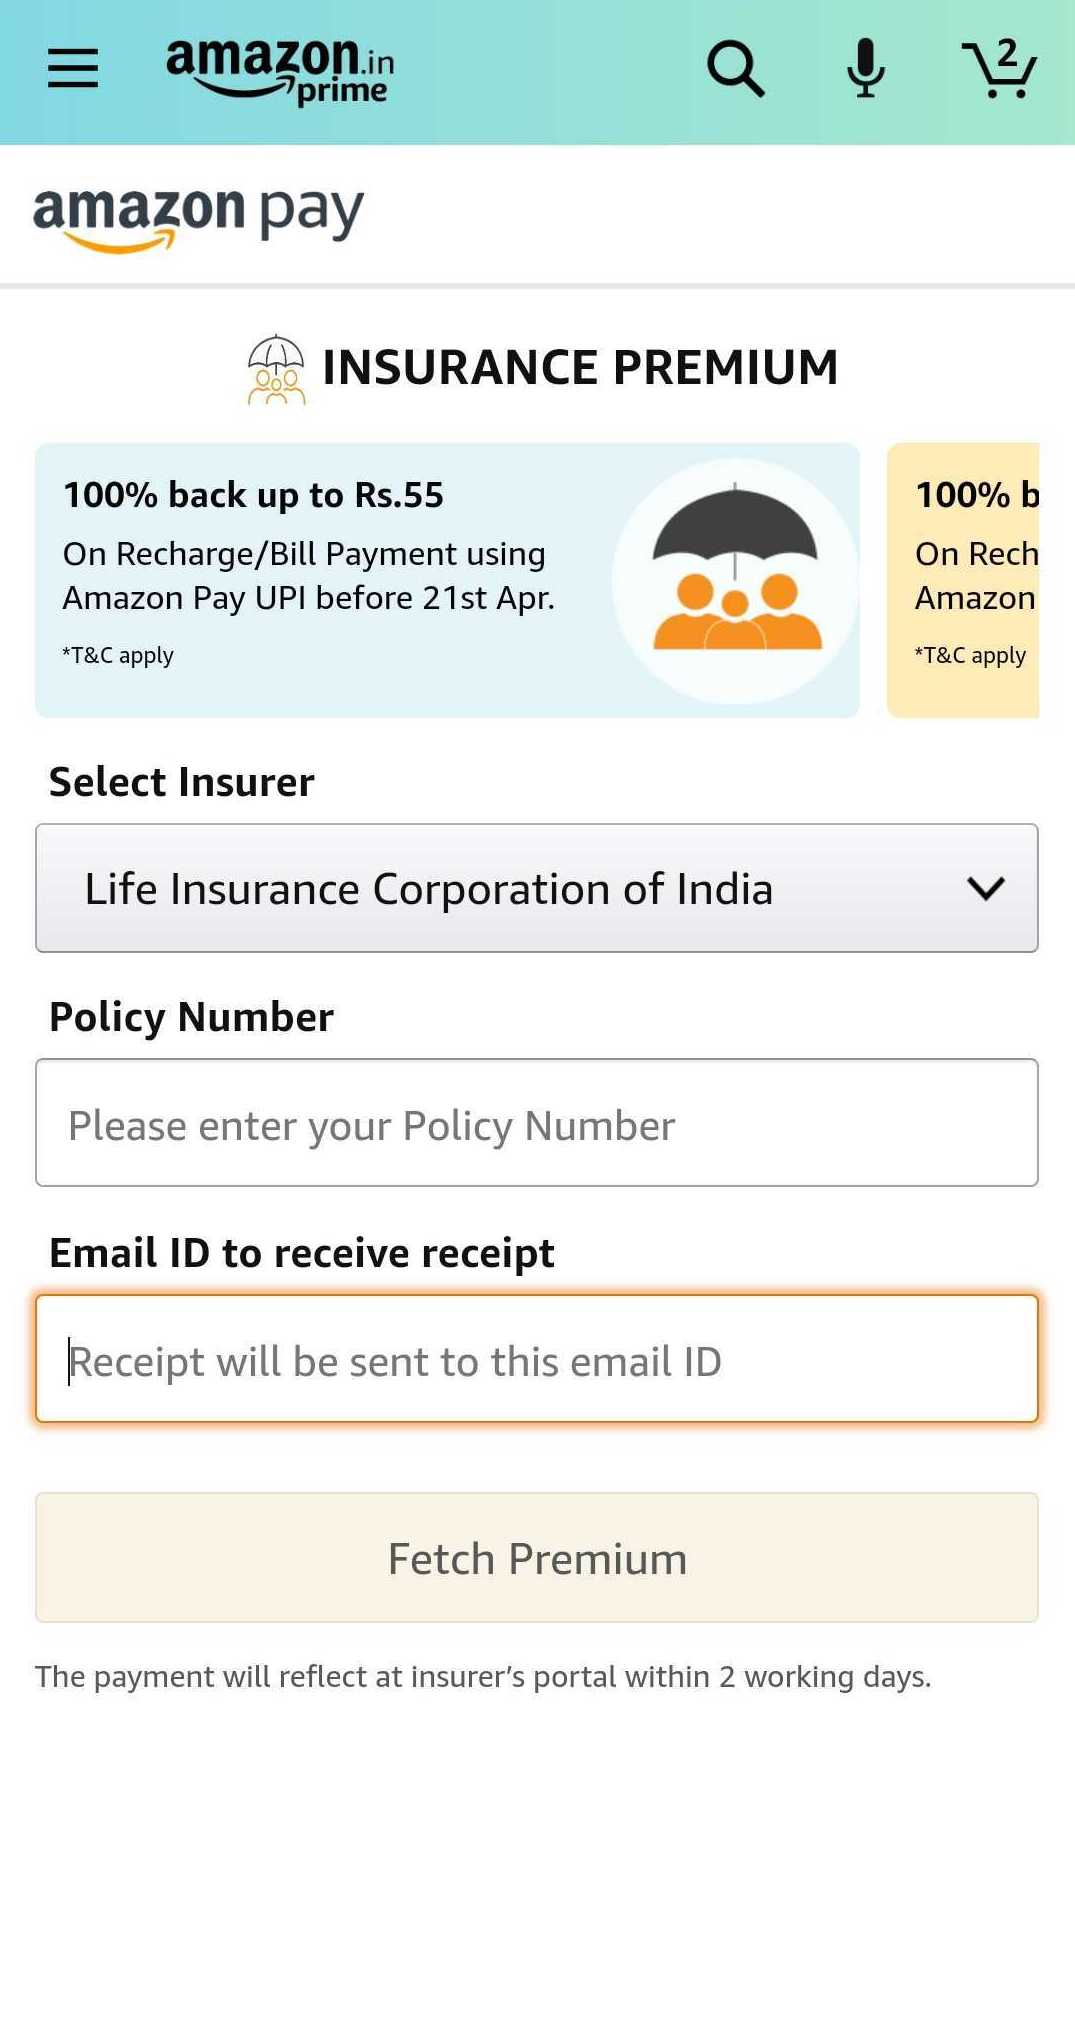 LIC users can pay their premium on Amazon Pay